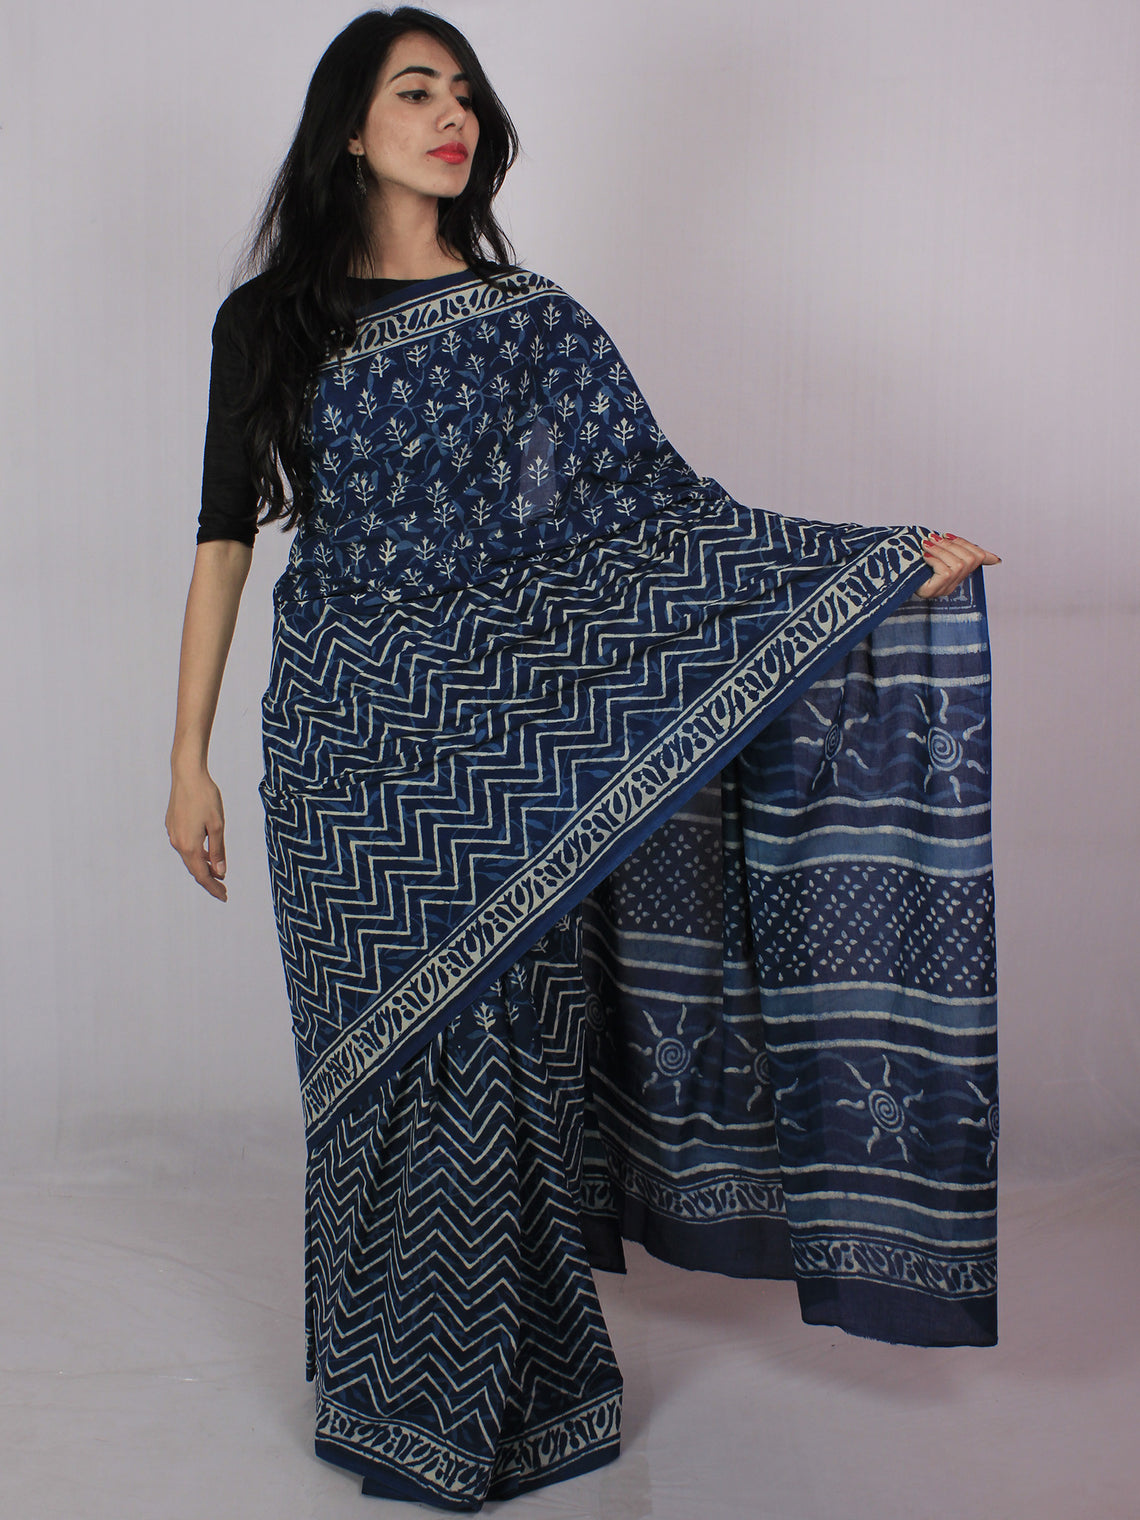 Indigo Ivory Hand Block Printed in Natural Colors Cotton Mul Saree - S031701203